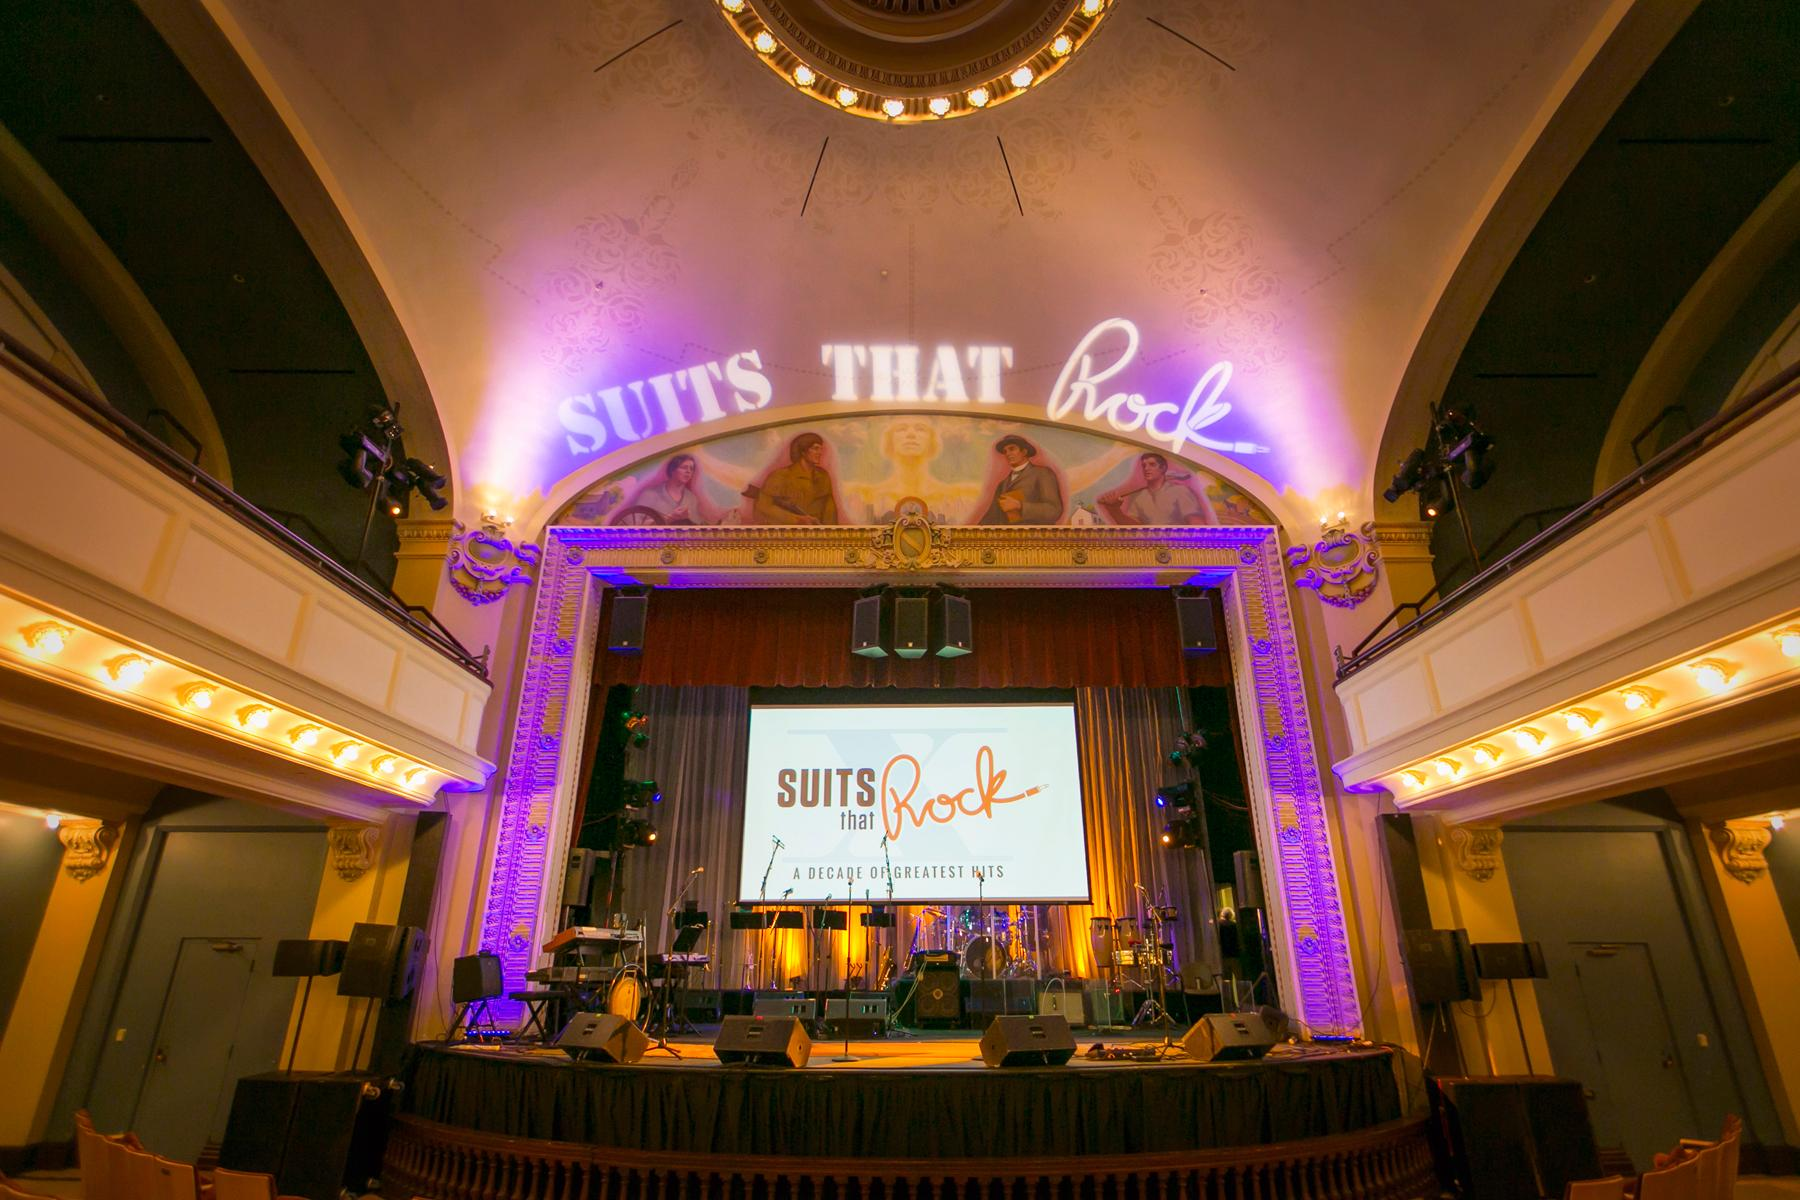 Suits That Rock is an annual rock concert at The Carnegie in Covington featuring performances by 40 prominent business and community leaders. Proceeds from the concert go on to benefit The Carnegie's children's education programs. These photos are from the June 17, 2017 show. There will be another show next Saturday on June 24 at 8pm. / Image: Mike Bresnen Photography // Published: 6.18.17